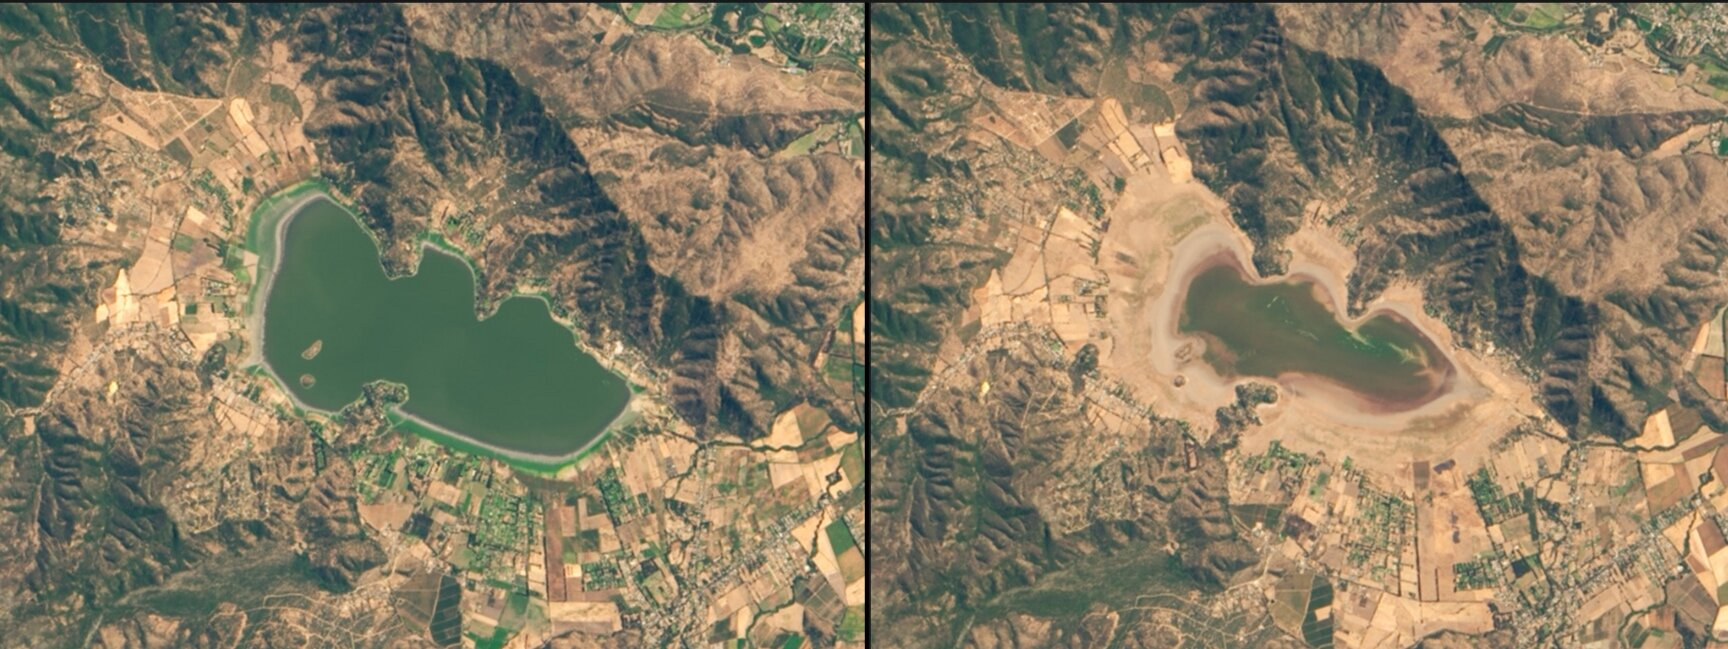 Chile's Lake Aculeo Dries Up via  Nasa  Images of Change.